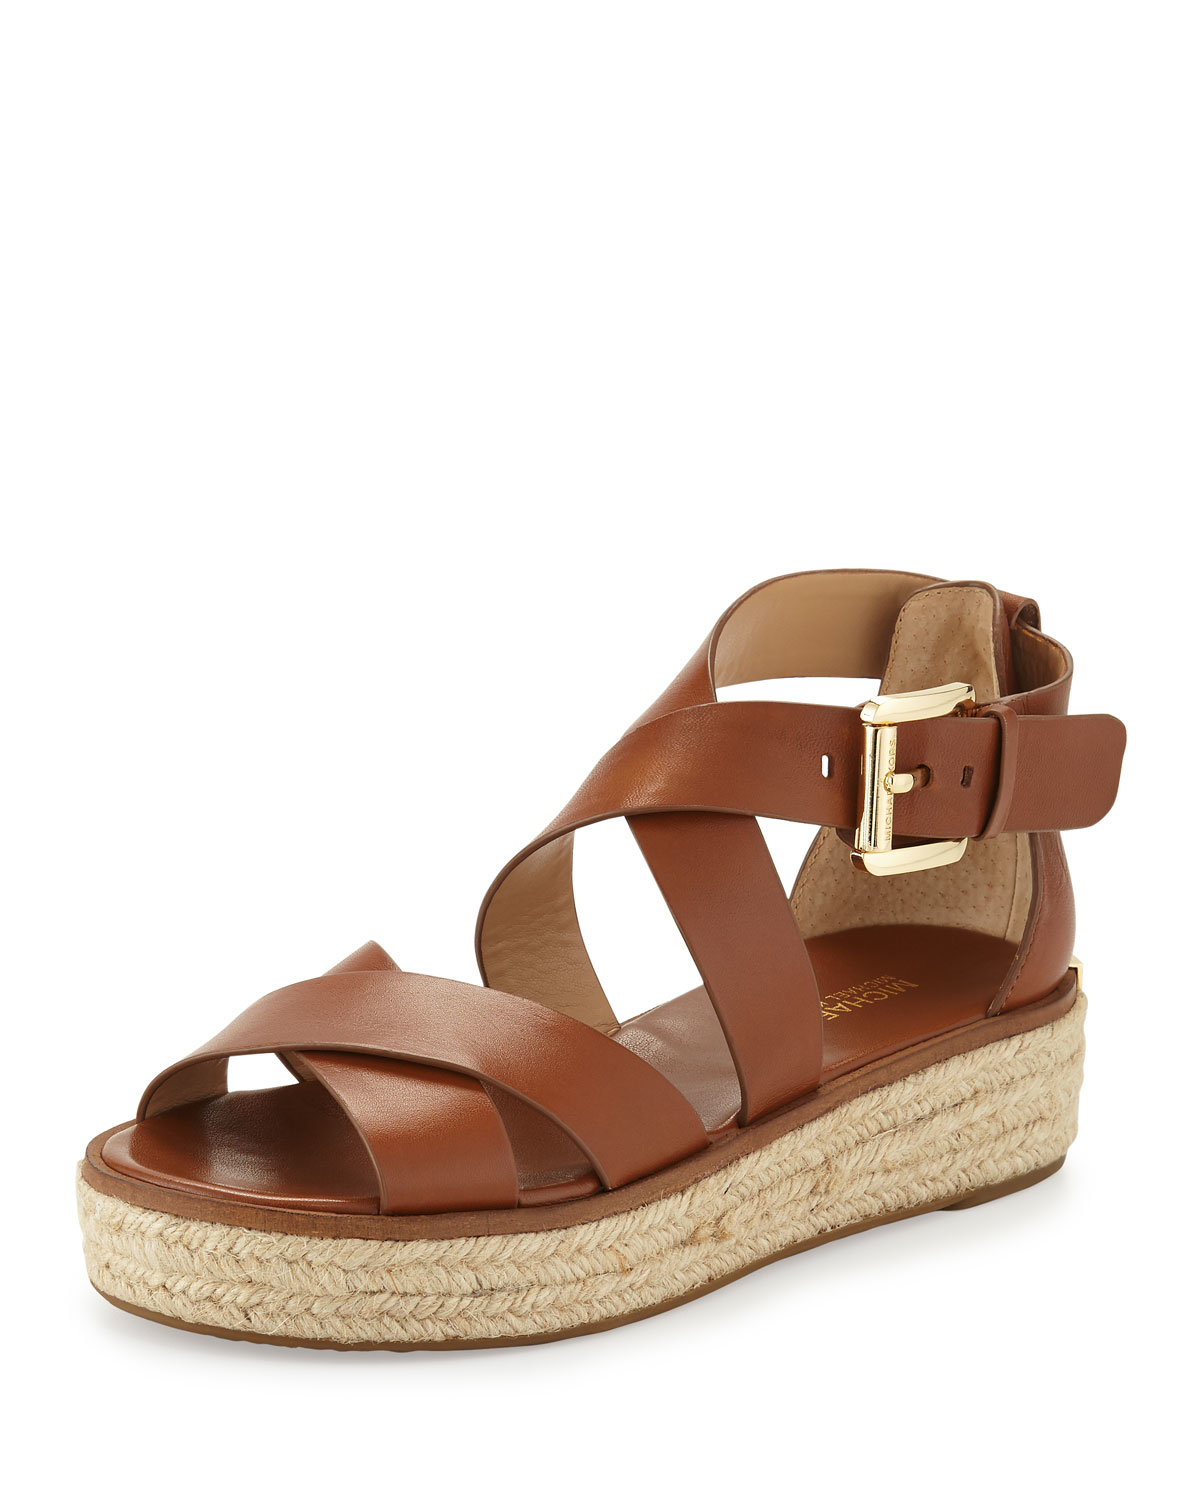 Michael michael kors Darby Leather Crisscross Sandal in ...